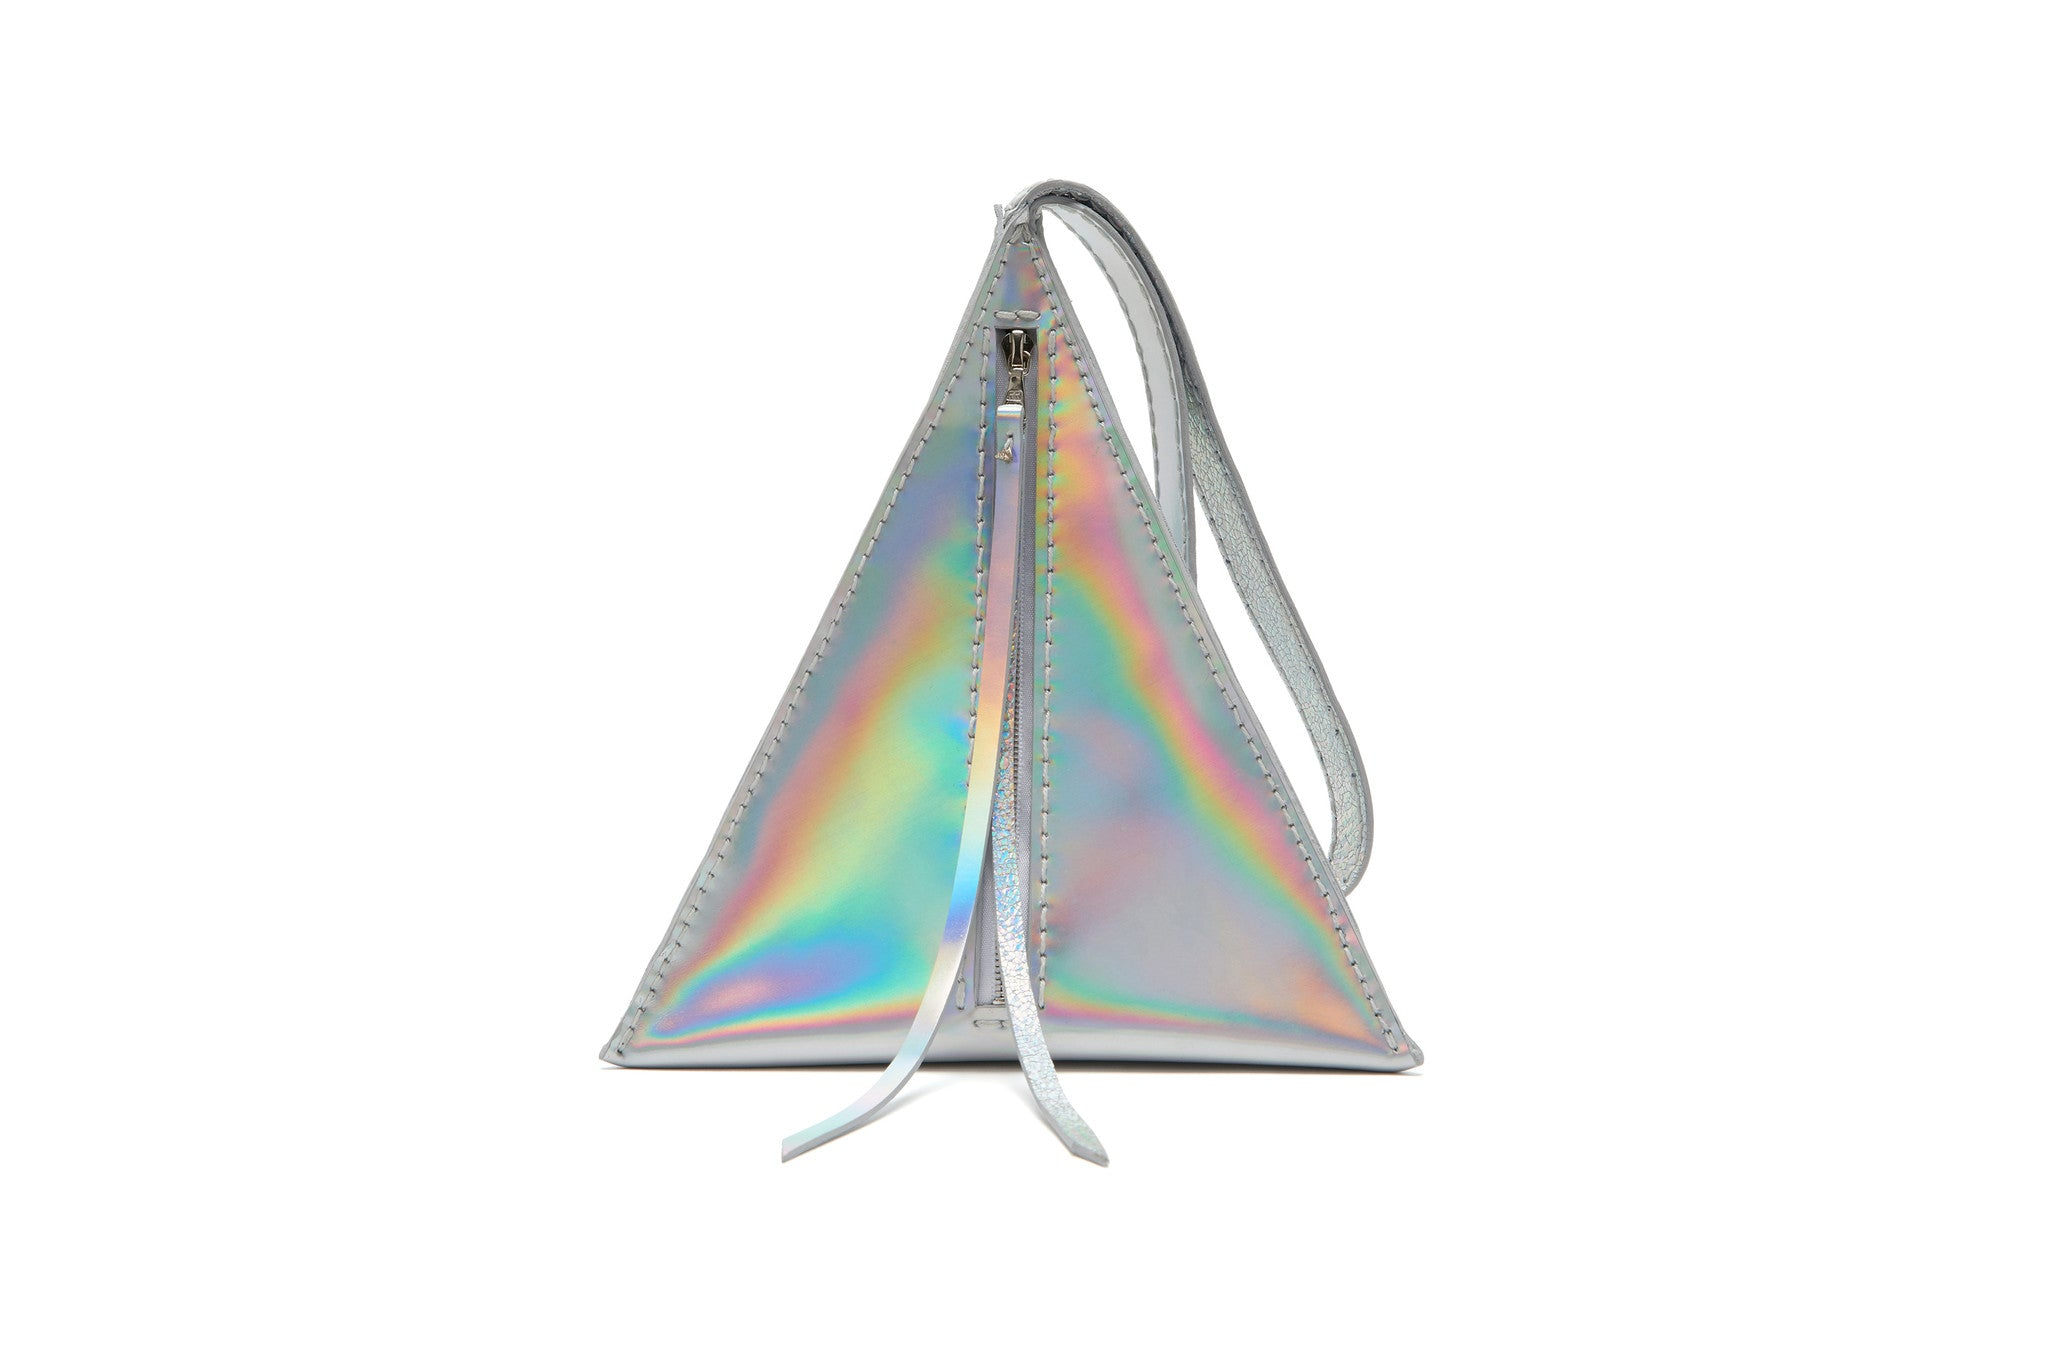 Wendy Nichol SS17 Fashion Show Death Valley Triangle shape high quality leather bag Handmade in NYC New York City Devil Star Pyramid Egyptian Triangle Bag handbag purse wristlet Silver Rainbow Metallic Shiny Patent Leather